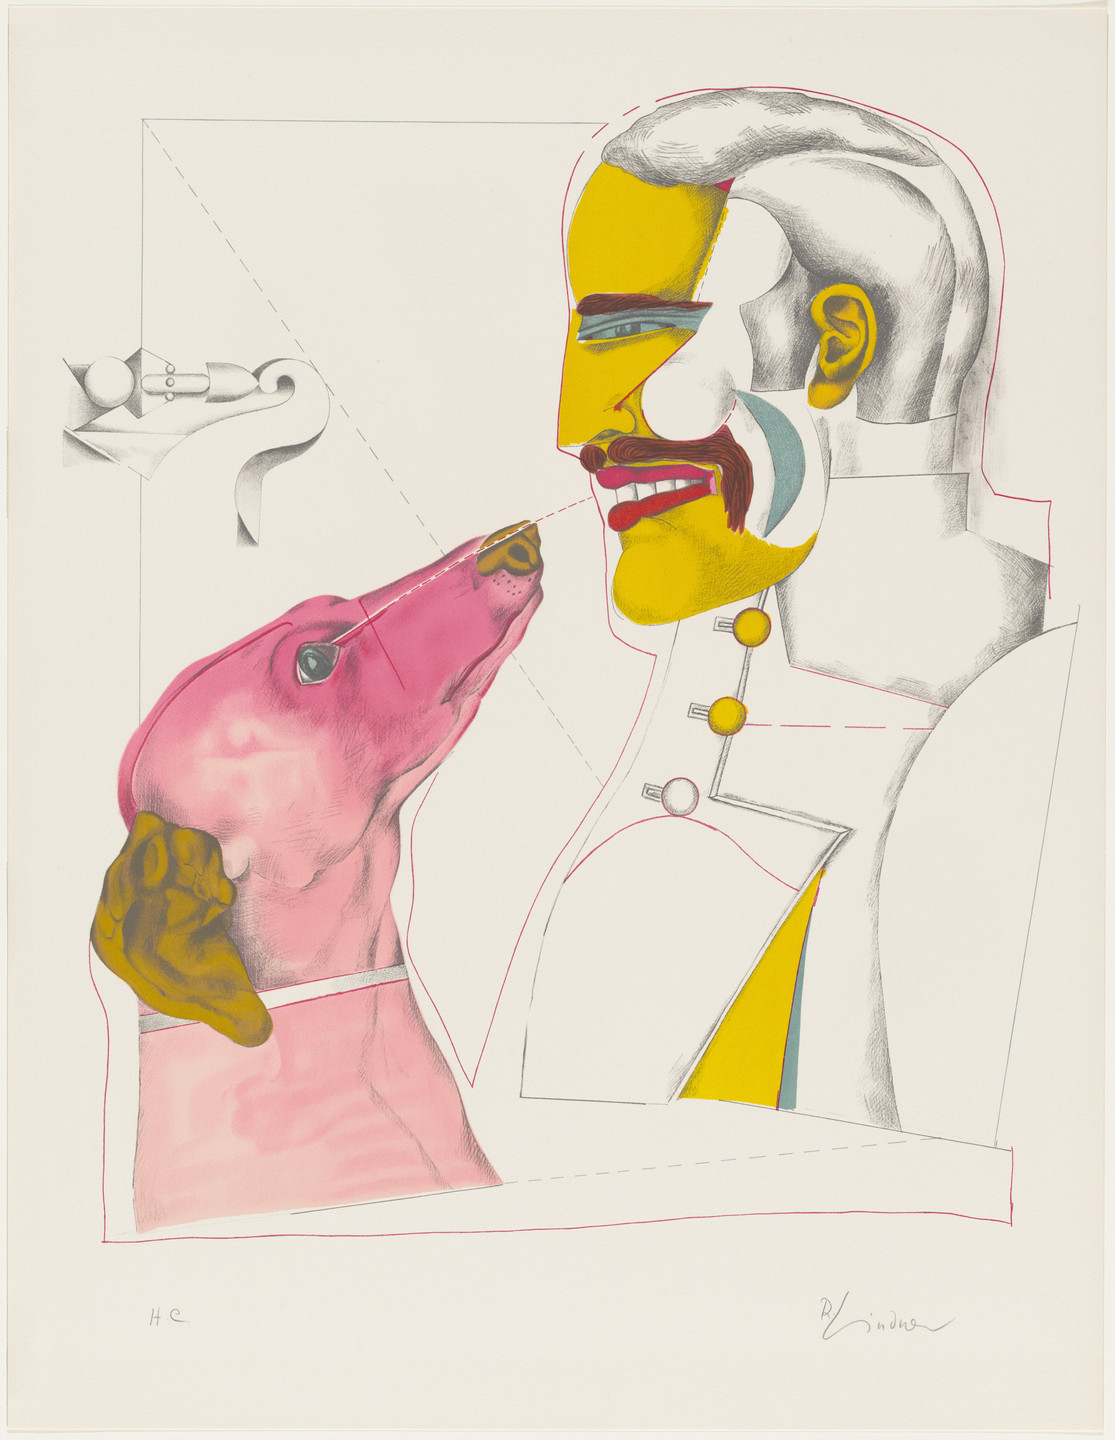 Richard Lindner. Man's Best Friend from the series After Noon. 1970